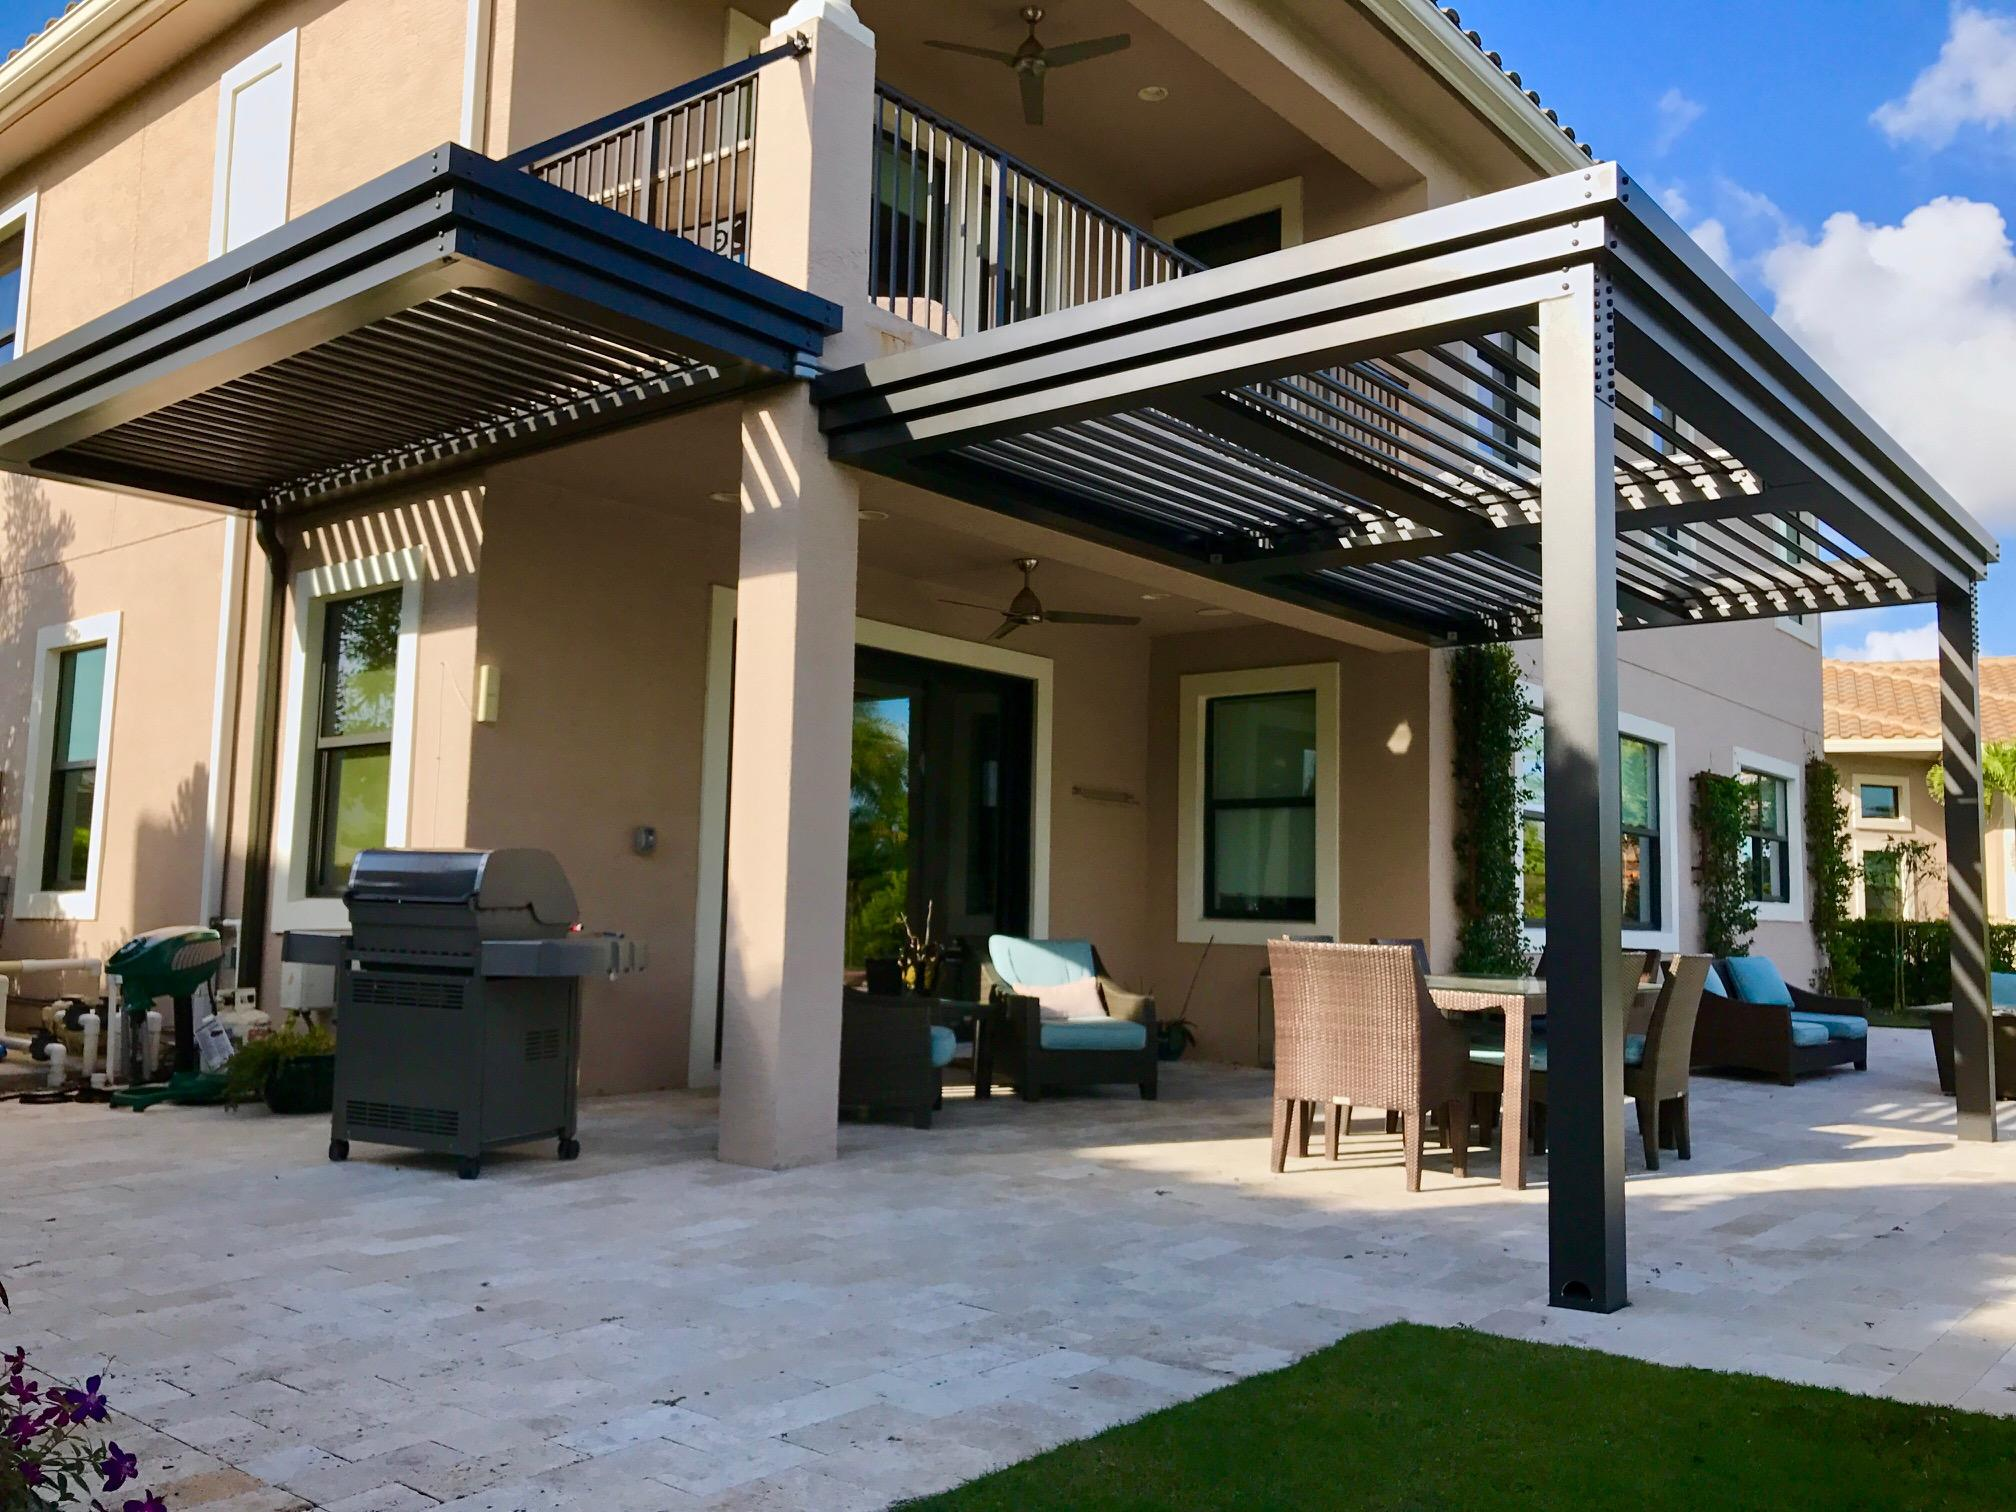 Absolute Outdoor Living image 5